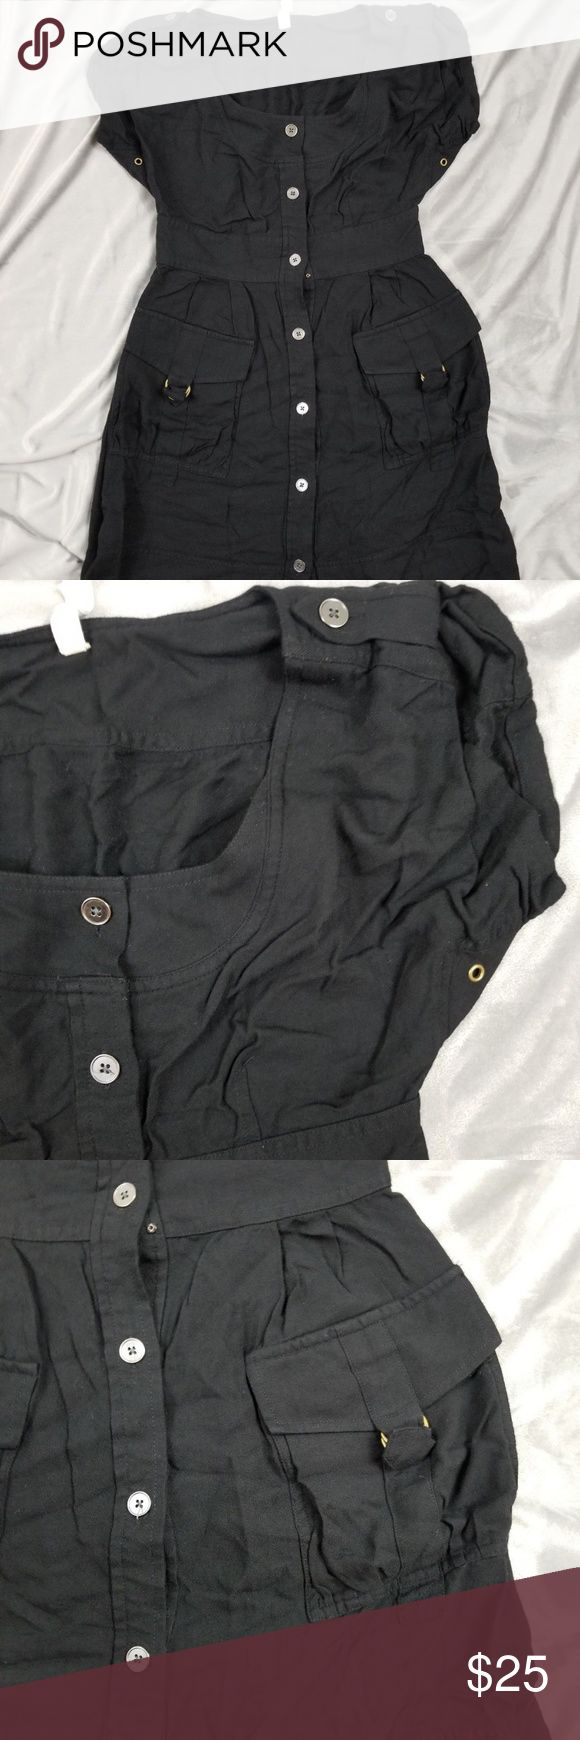 "Anthropologie Maeve Black Button Down Cargo Dress Pre-owned Anthropologie Maeve NWT Black Button Down Cargo Pocket STAYSAIL SHIRT Dress 2  Bust: 17"" Waist: 13 3/4"" Hip: 19 1/2"" Length: 35 1/2""  Please review item photos carefully. Please ask questions about this item. All items come from a smoke free home. We ship Monday thru Friday. Check out our other items for sale!  Item Location:045 Anthropologie Dresses"